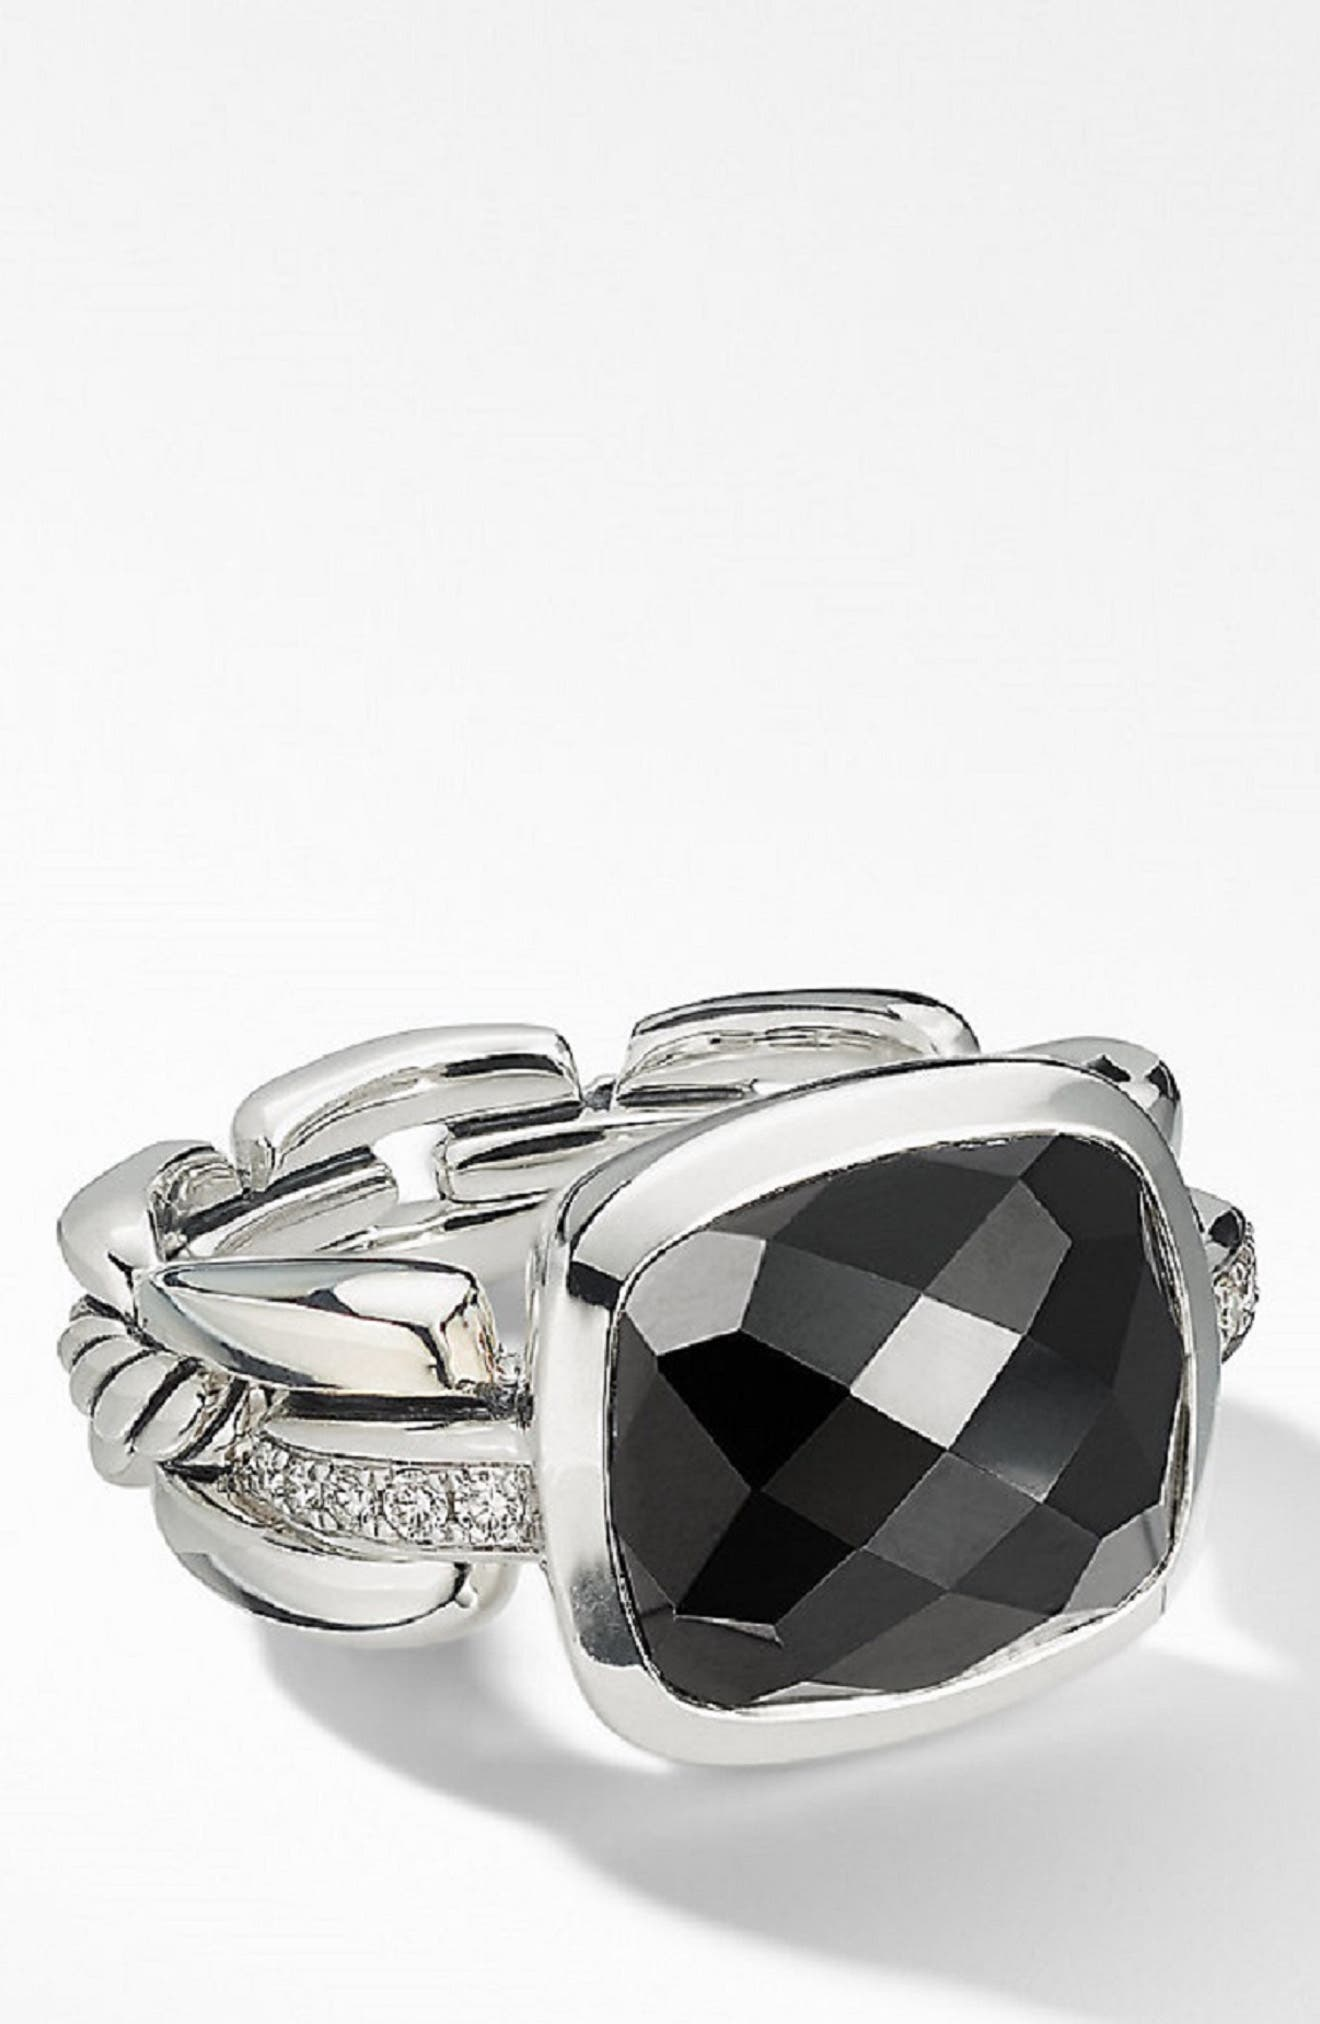 Wellesley Link Statement Ring with Diamonds,                         Main,                         color, BLACK ONYX